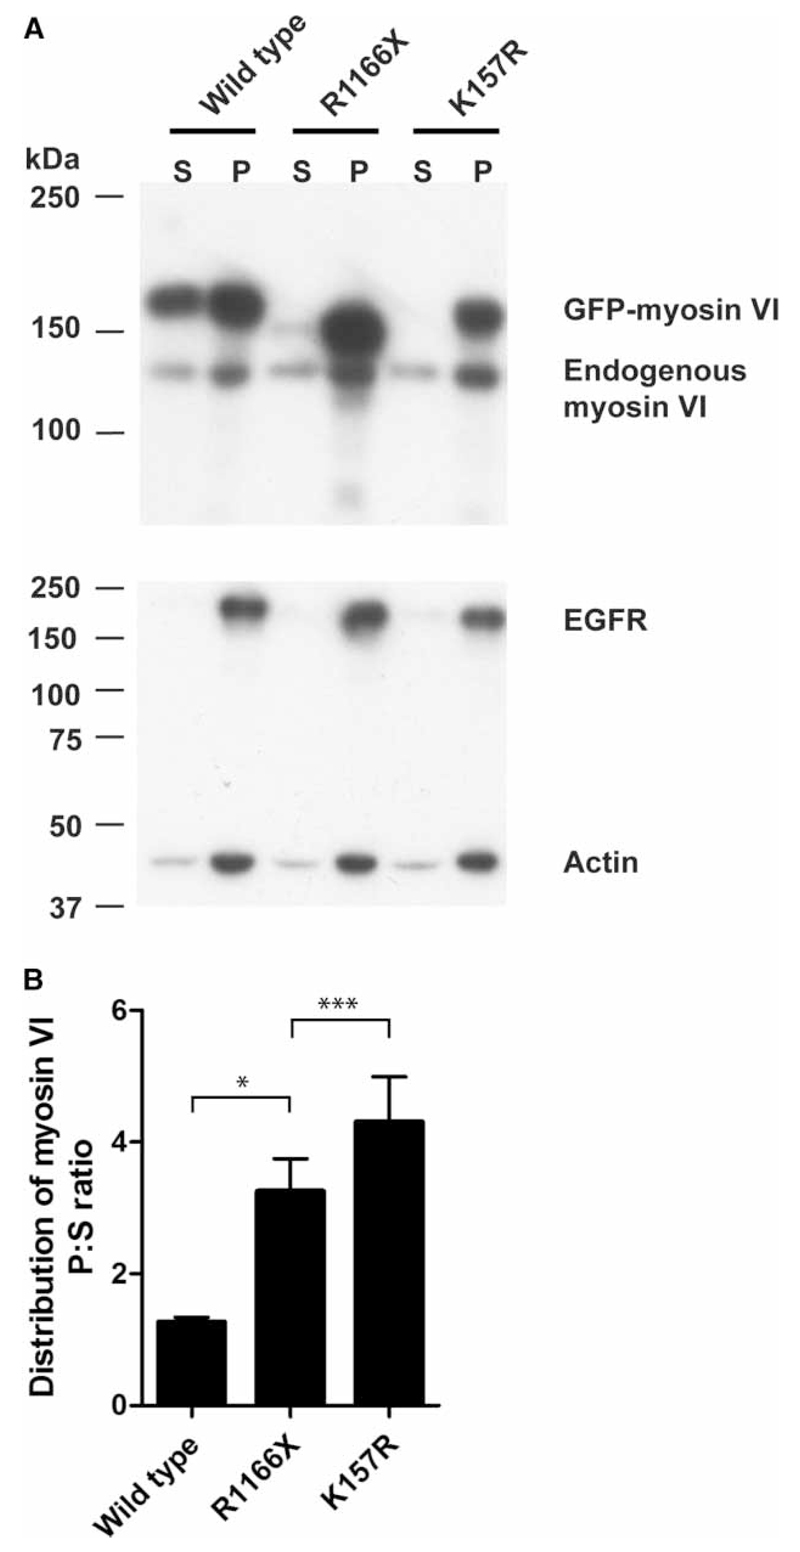 R1166X mutation increases the amount of myosin VI in the cytosol pellet fraction. ( A ) RPE cells were transfected with WT full-length GFP-tagged myosin VI-NI, myosin VI R1166X and the rigor mutant, K157R and the distribution of myosin VI and loading controls, EGFR and actin, between supernatant (S) and pellet (P) was analysed by an actin pelleting assay followed by quantitative immunoblotting. ( B ) Quantitative immunoblotting of myosin VI distribution between pellet and supernatant fractions is shown (±SEM, n = 5, *** P